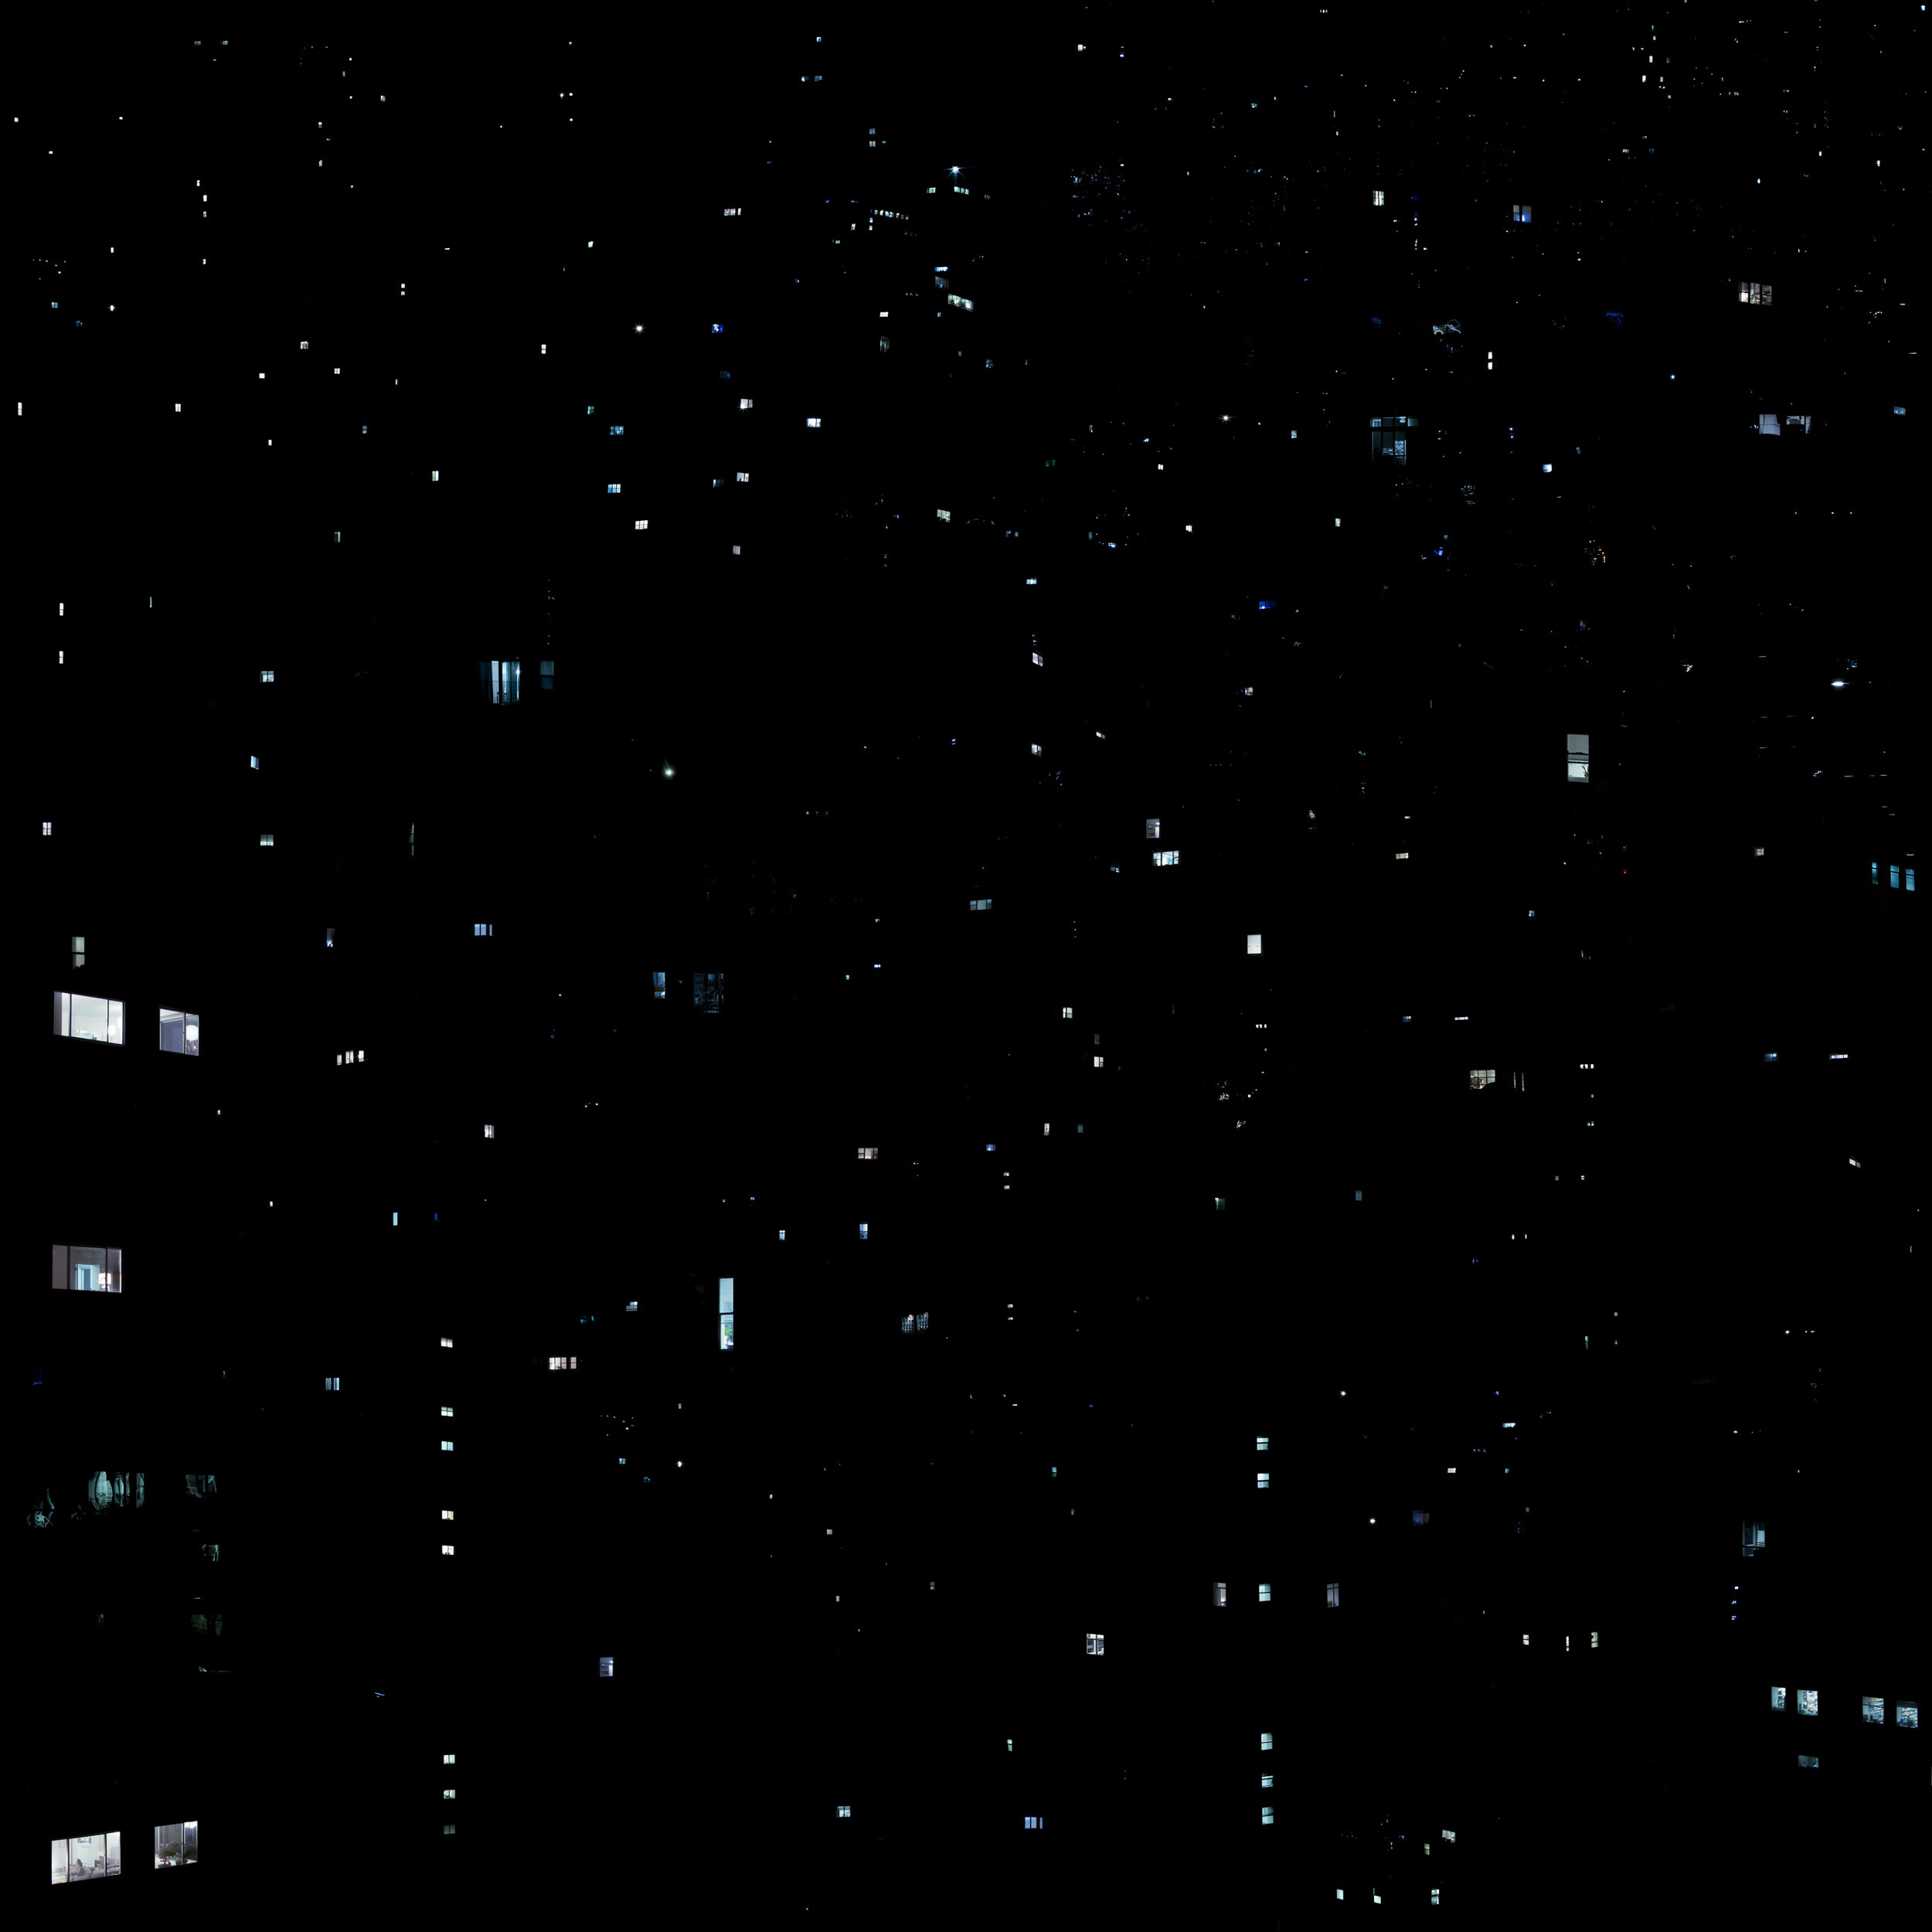 Windows from many apartment buildings that look like stars